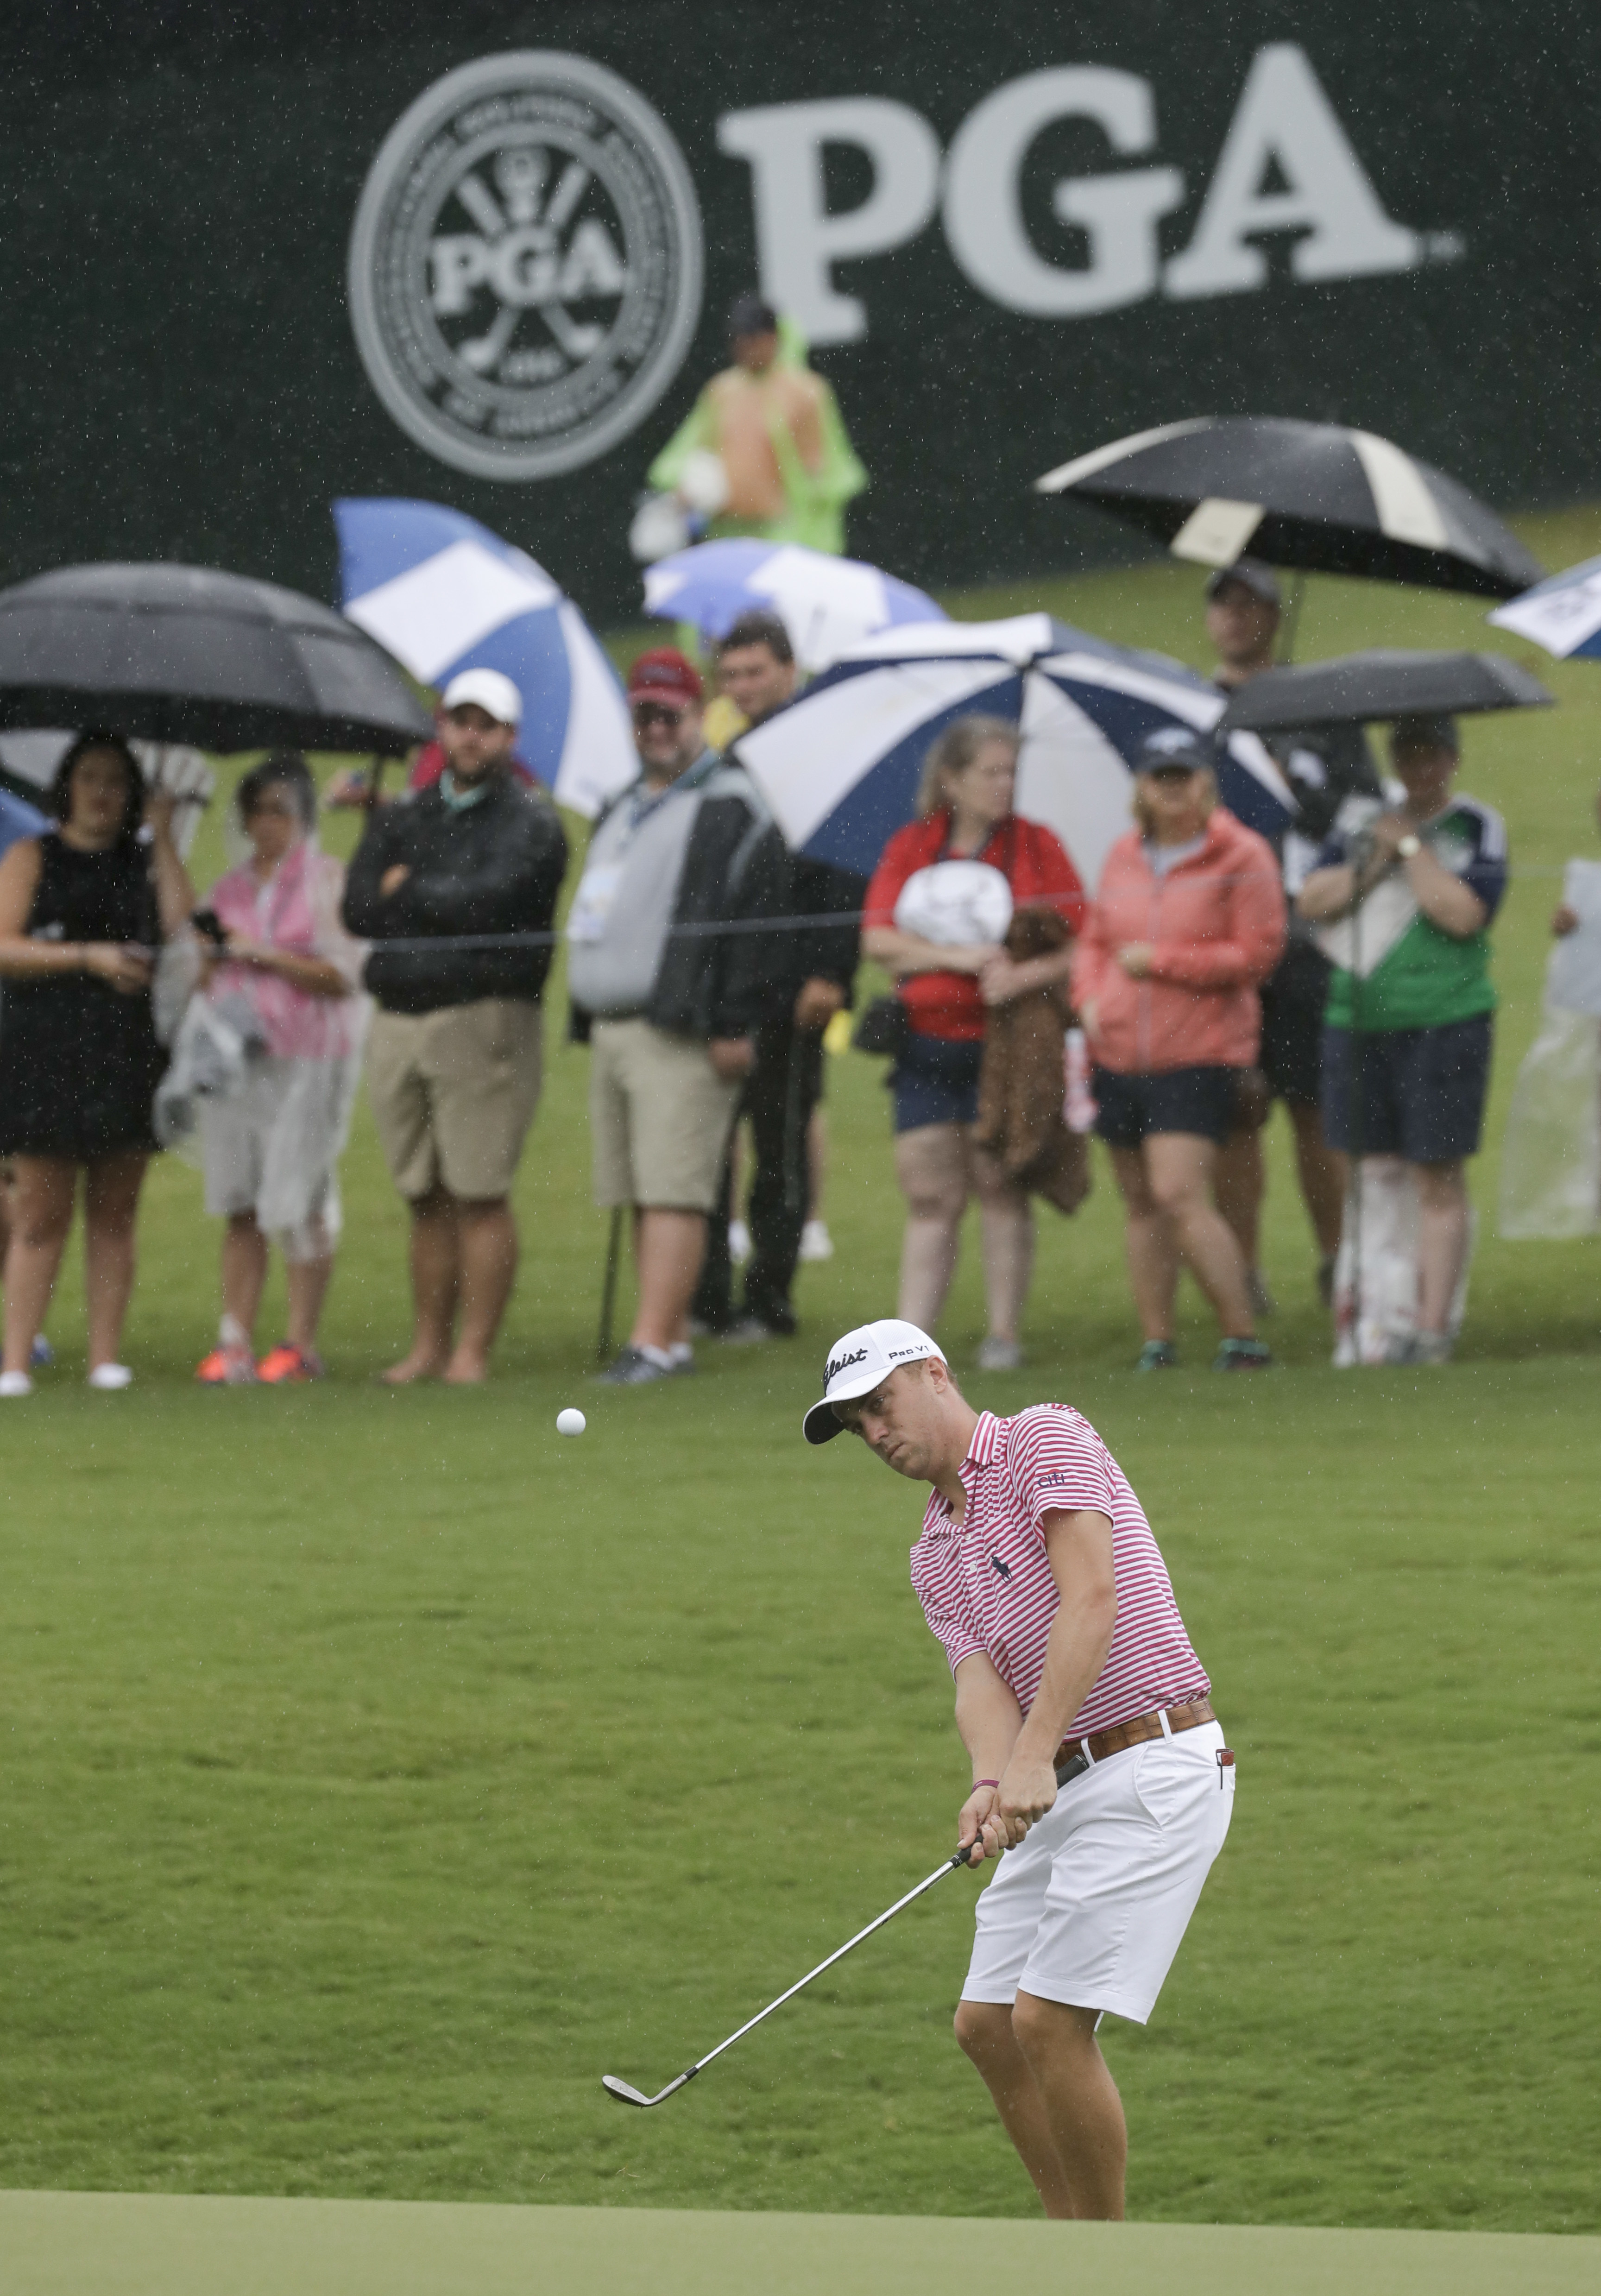 Justin Thomas chips to the 18th hole during a practice round for the PGA Championship at the Quail Hollow Club Tuesday, Aug. 8, 2017, in Charlotte, N.C. For the first time, the PGA Championship is letting players wear shorts in practice rounds. (AP Photo/